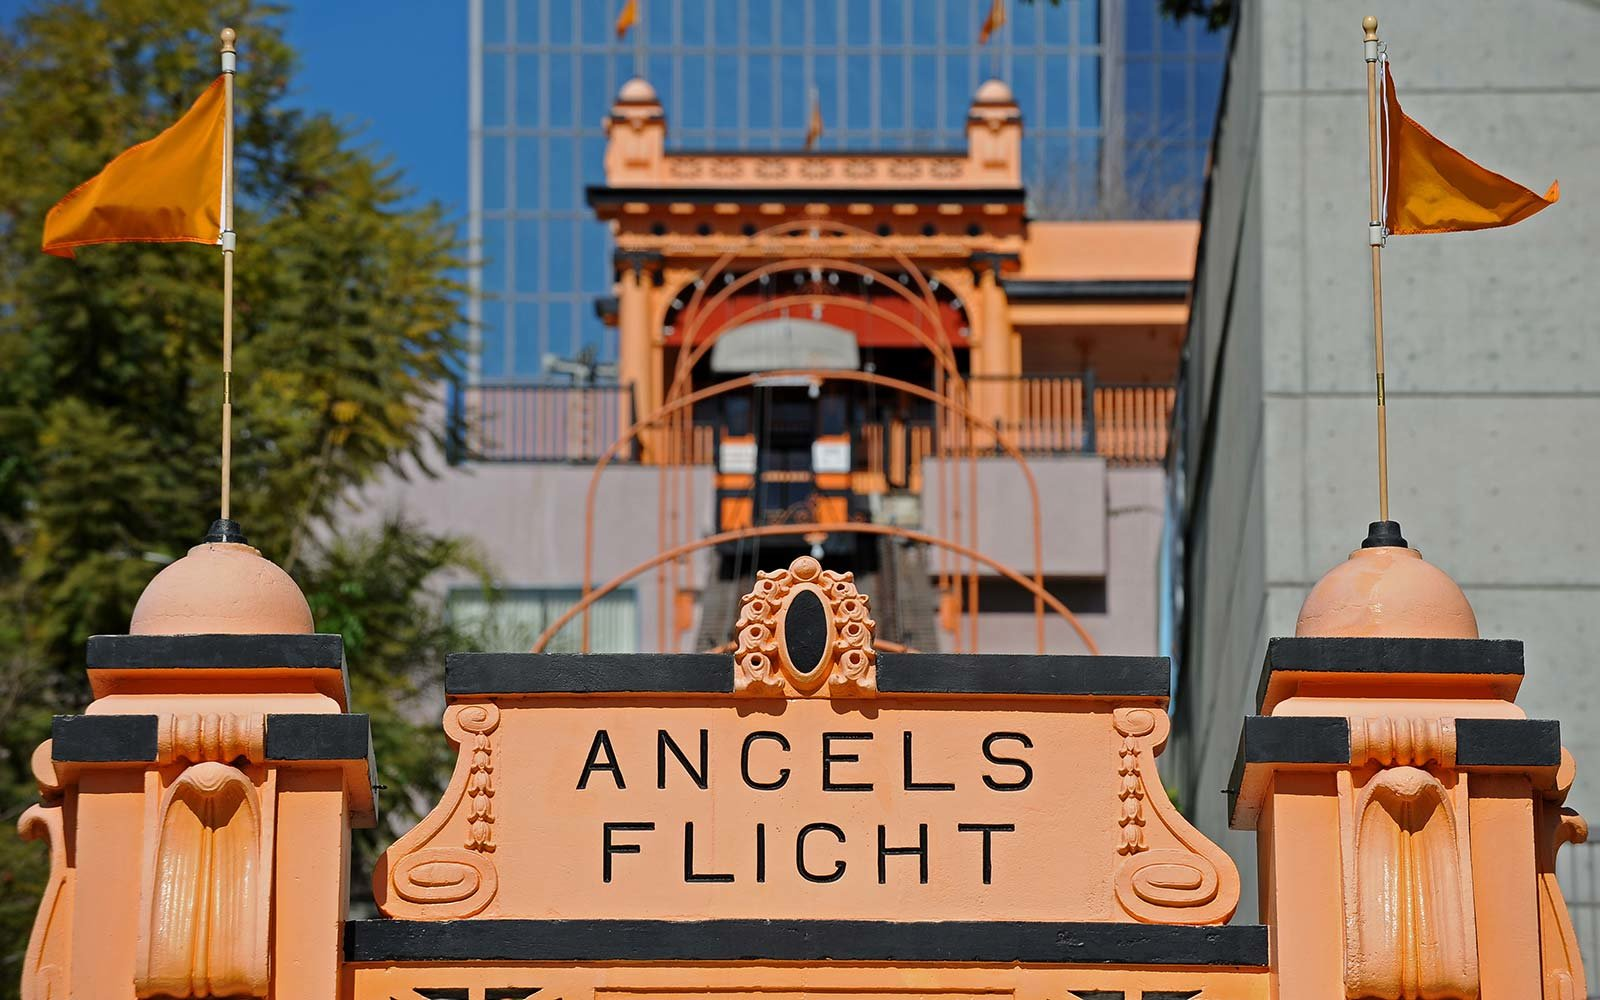 The Angels Flight Railway, for the first time in more than nine years, resumes ferrying passengers up and down Bunker Hill in downtown Los Angeles Angel's Flight, which has been dubbed  the shortest railway in the world,